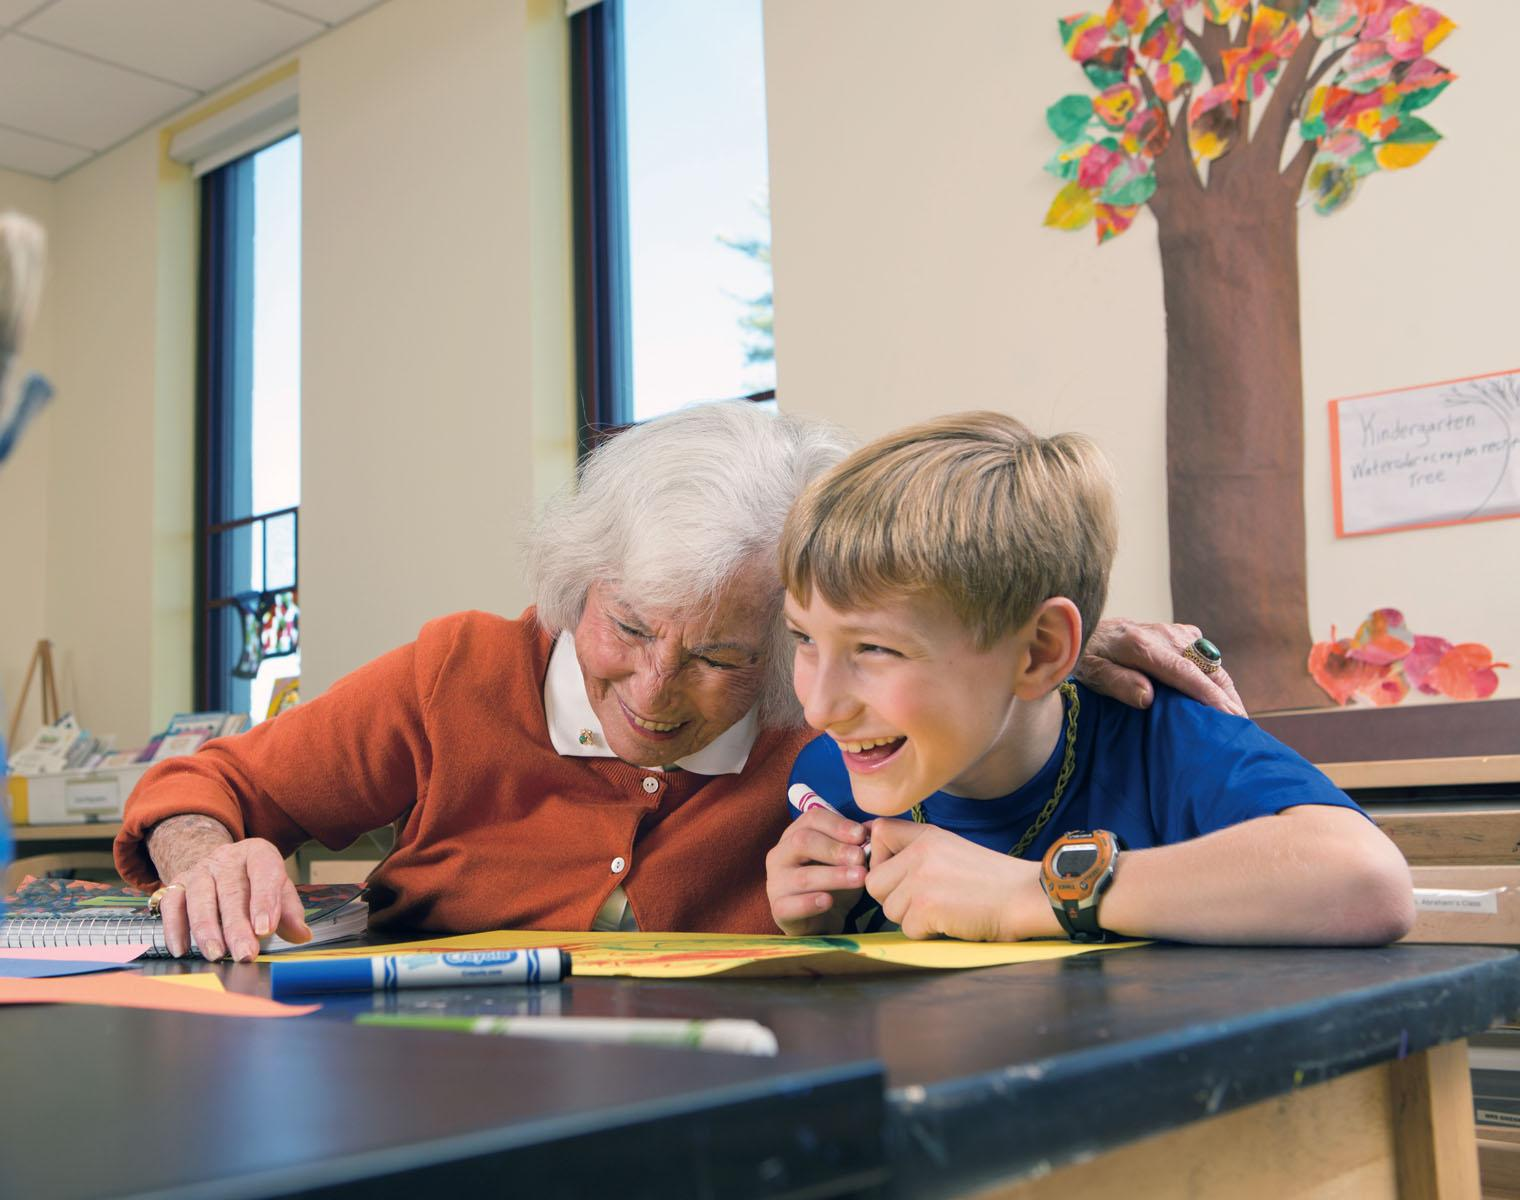 An older with and a school age boy laugh together while working on an art project.